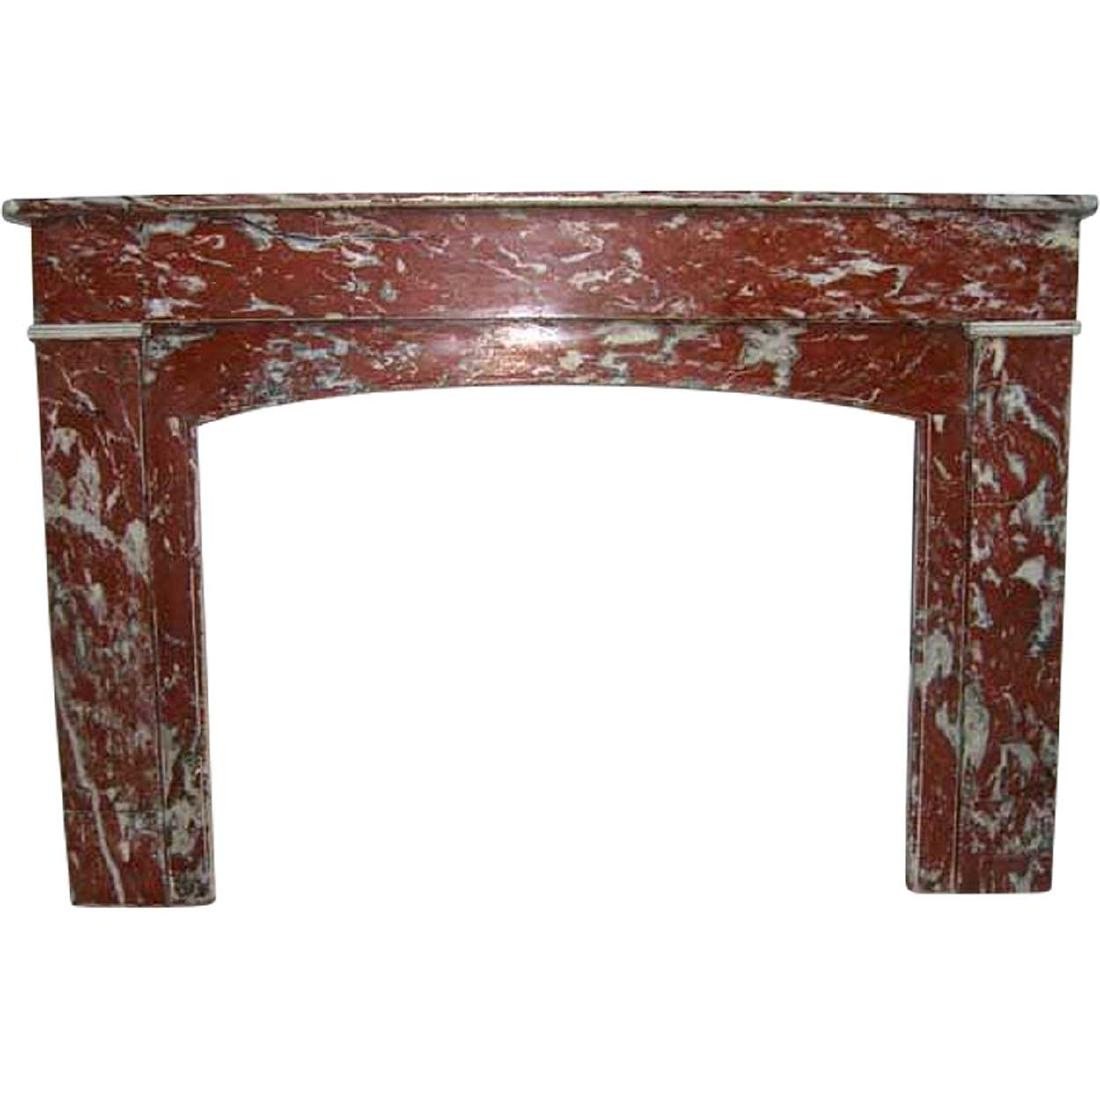 French Louis Philippe Rouge Royale Marble Fireplace Sur